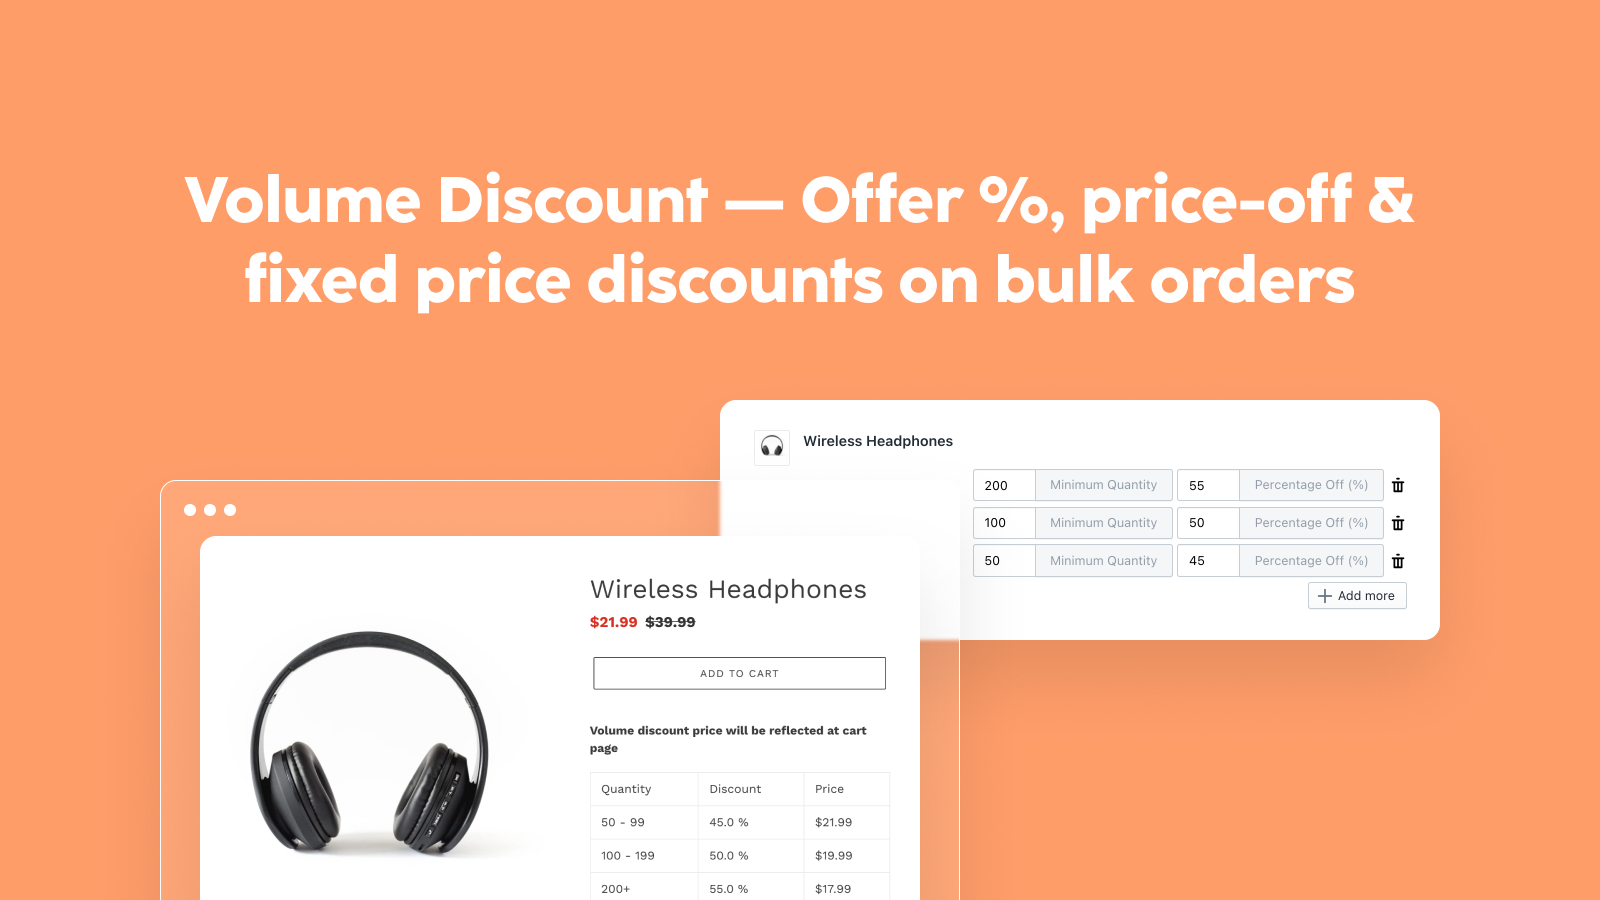 Offer %, price-off & fixed price discounts on bulk orders